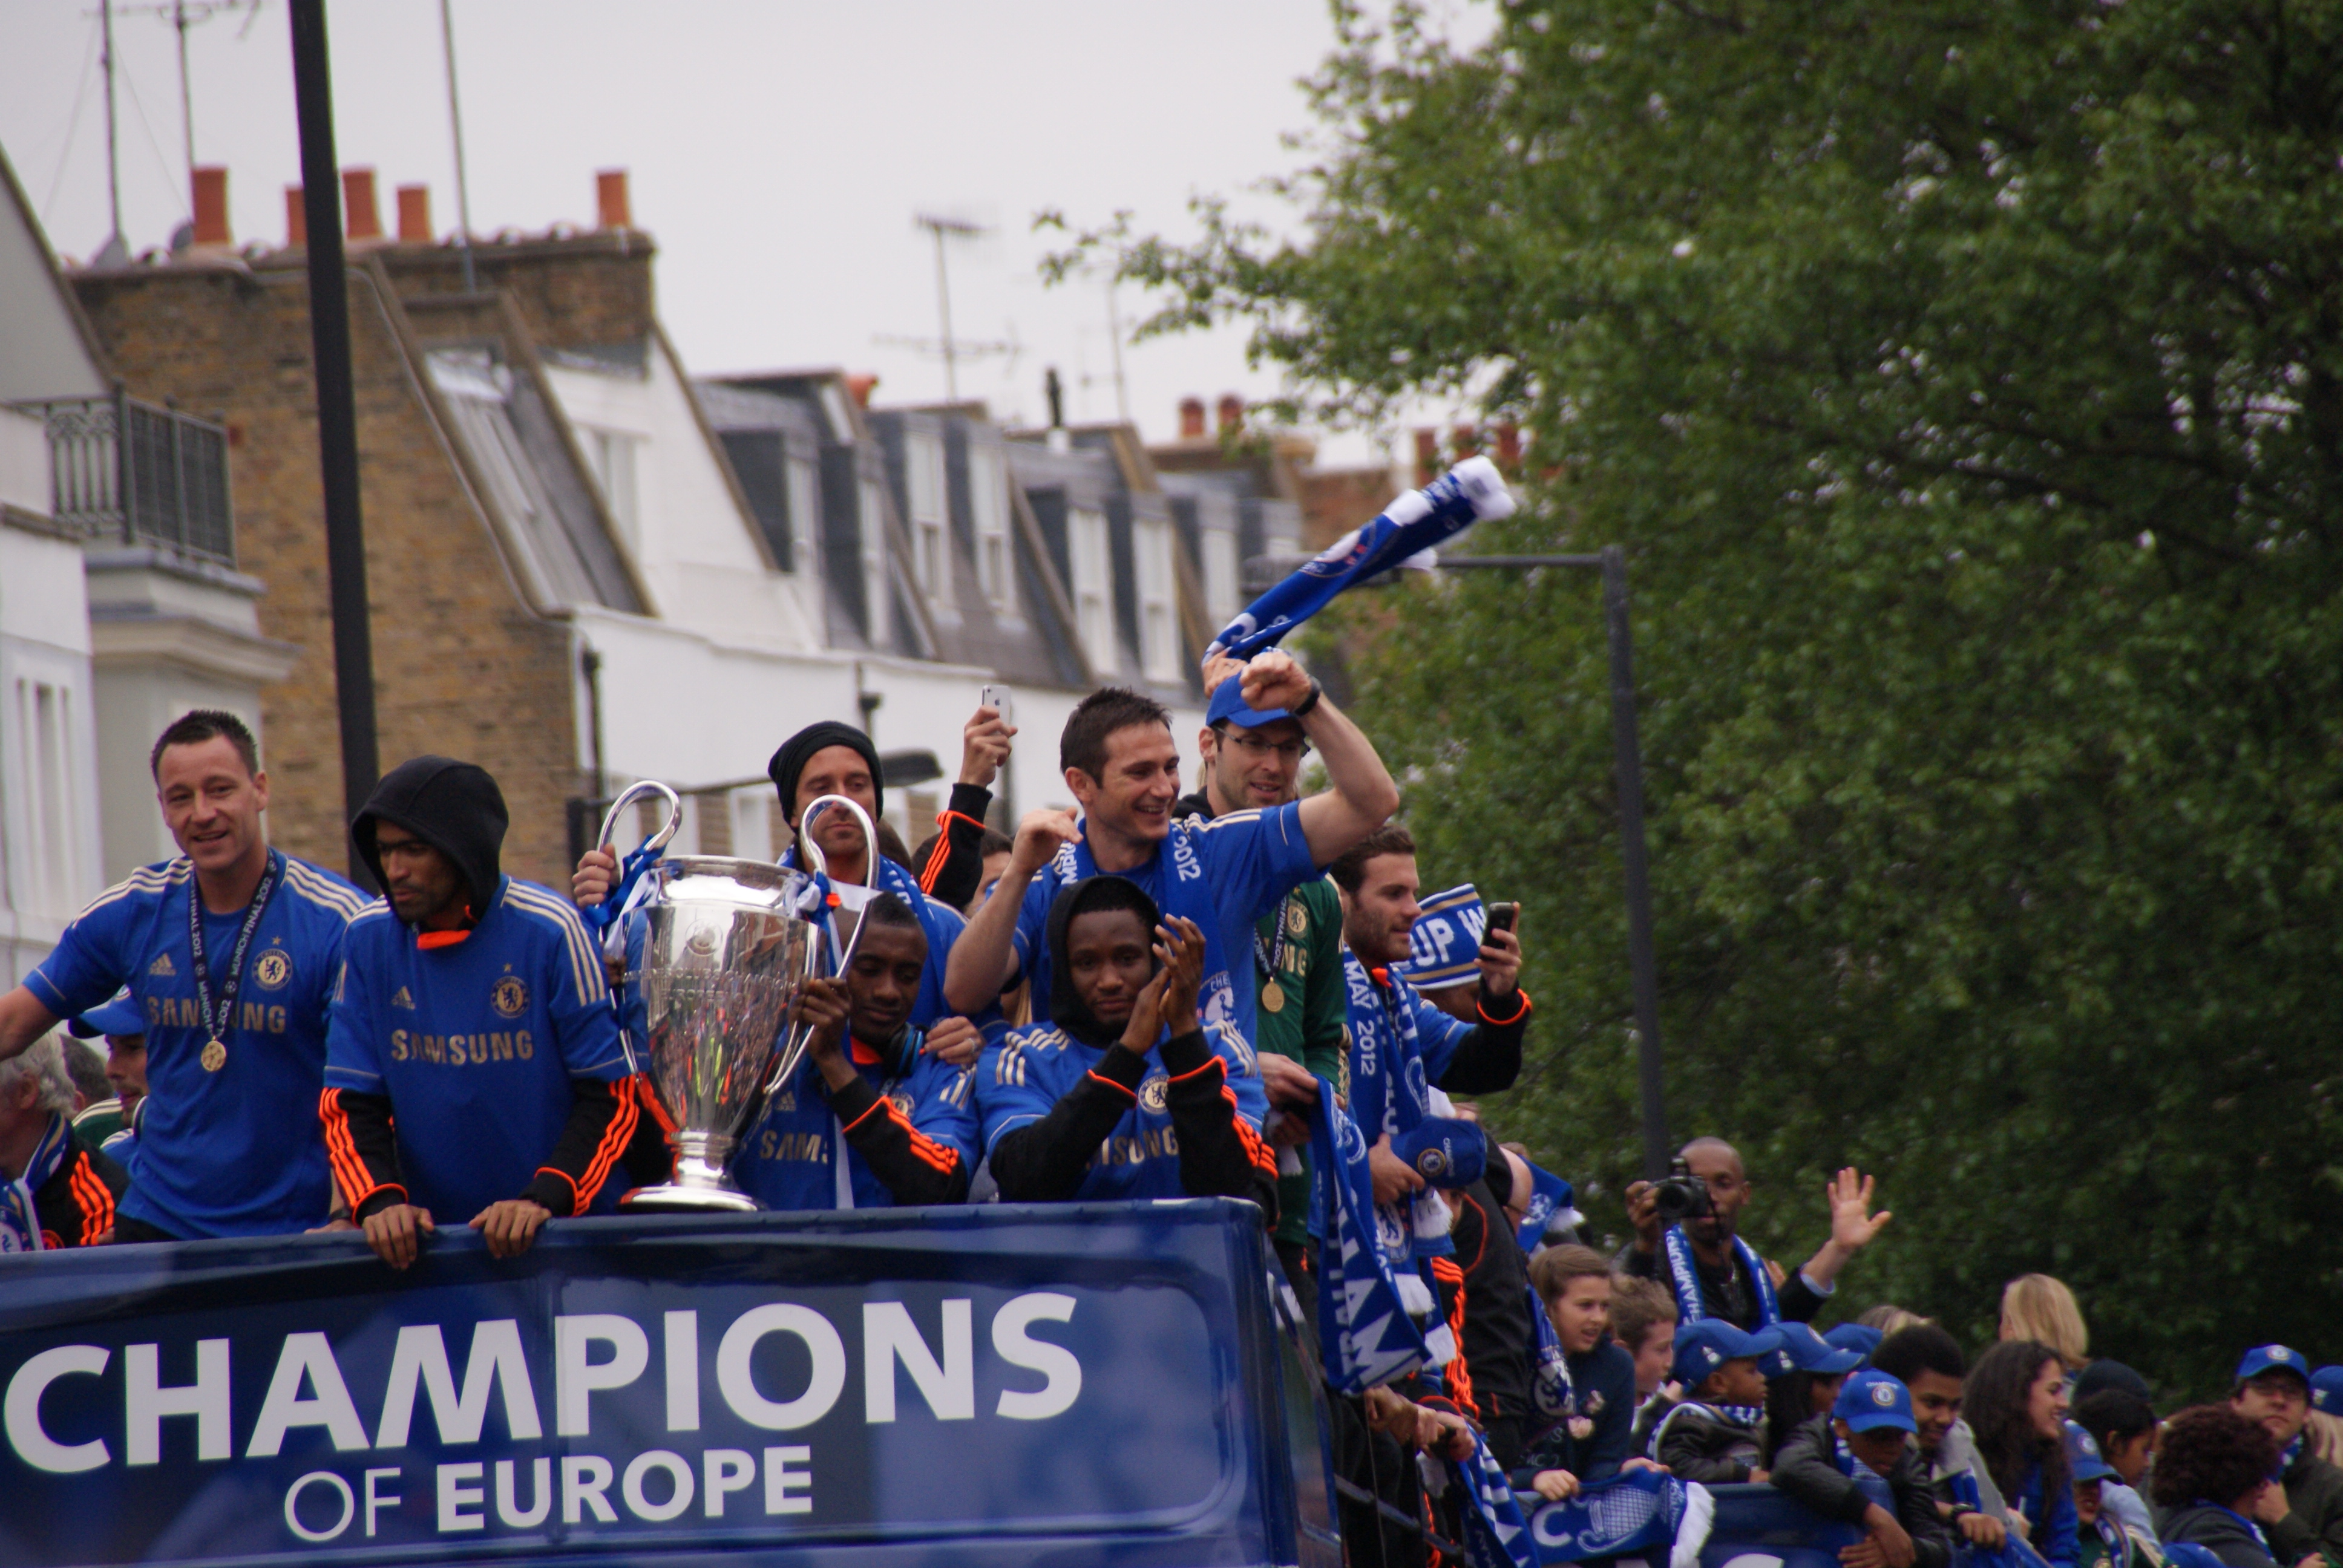 FileChelsea Champions League Trophy Parade 2012